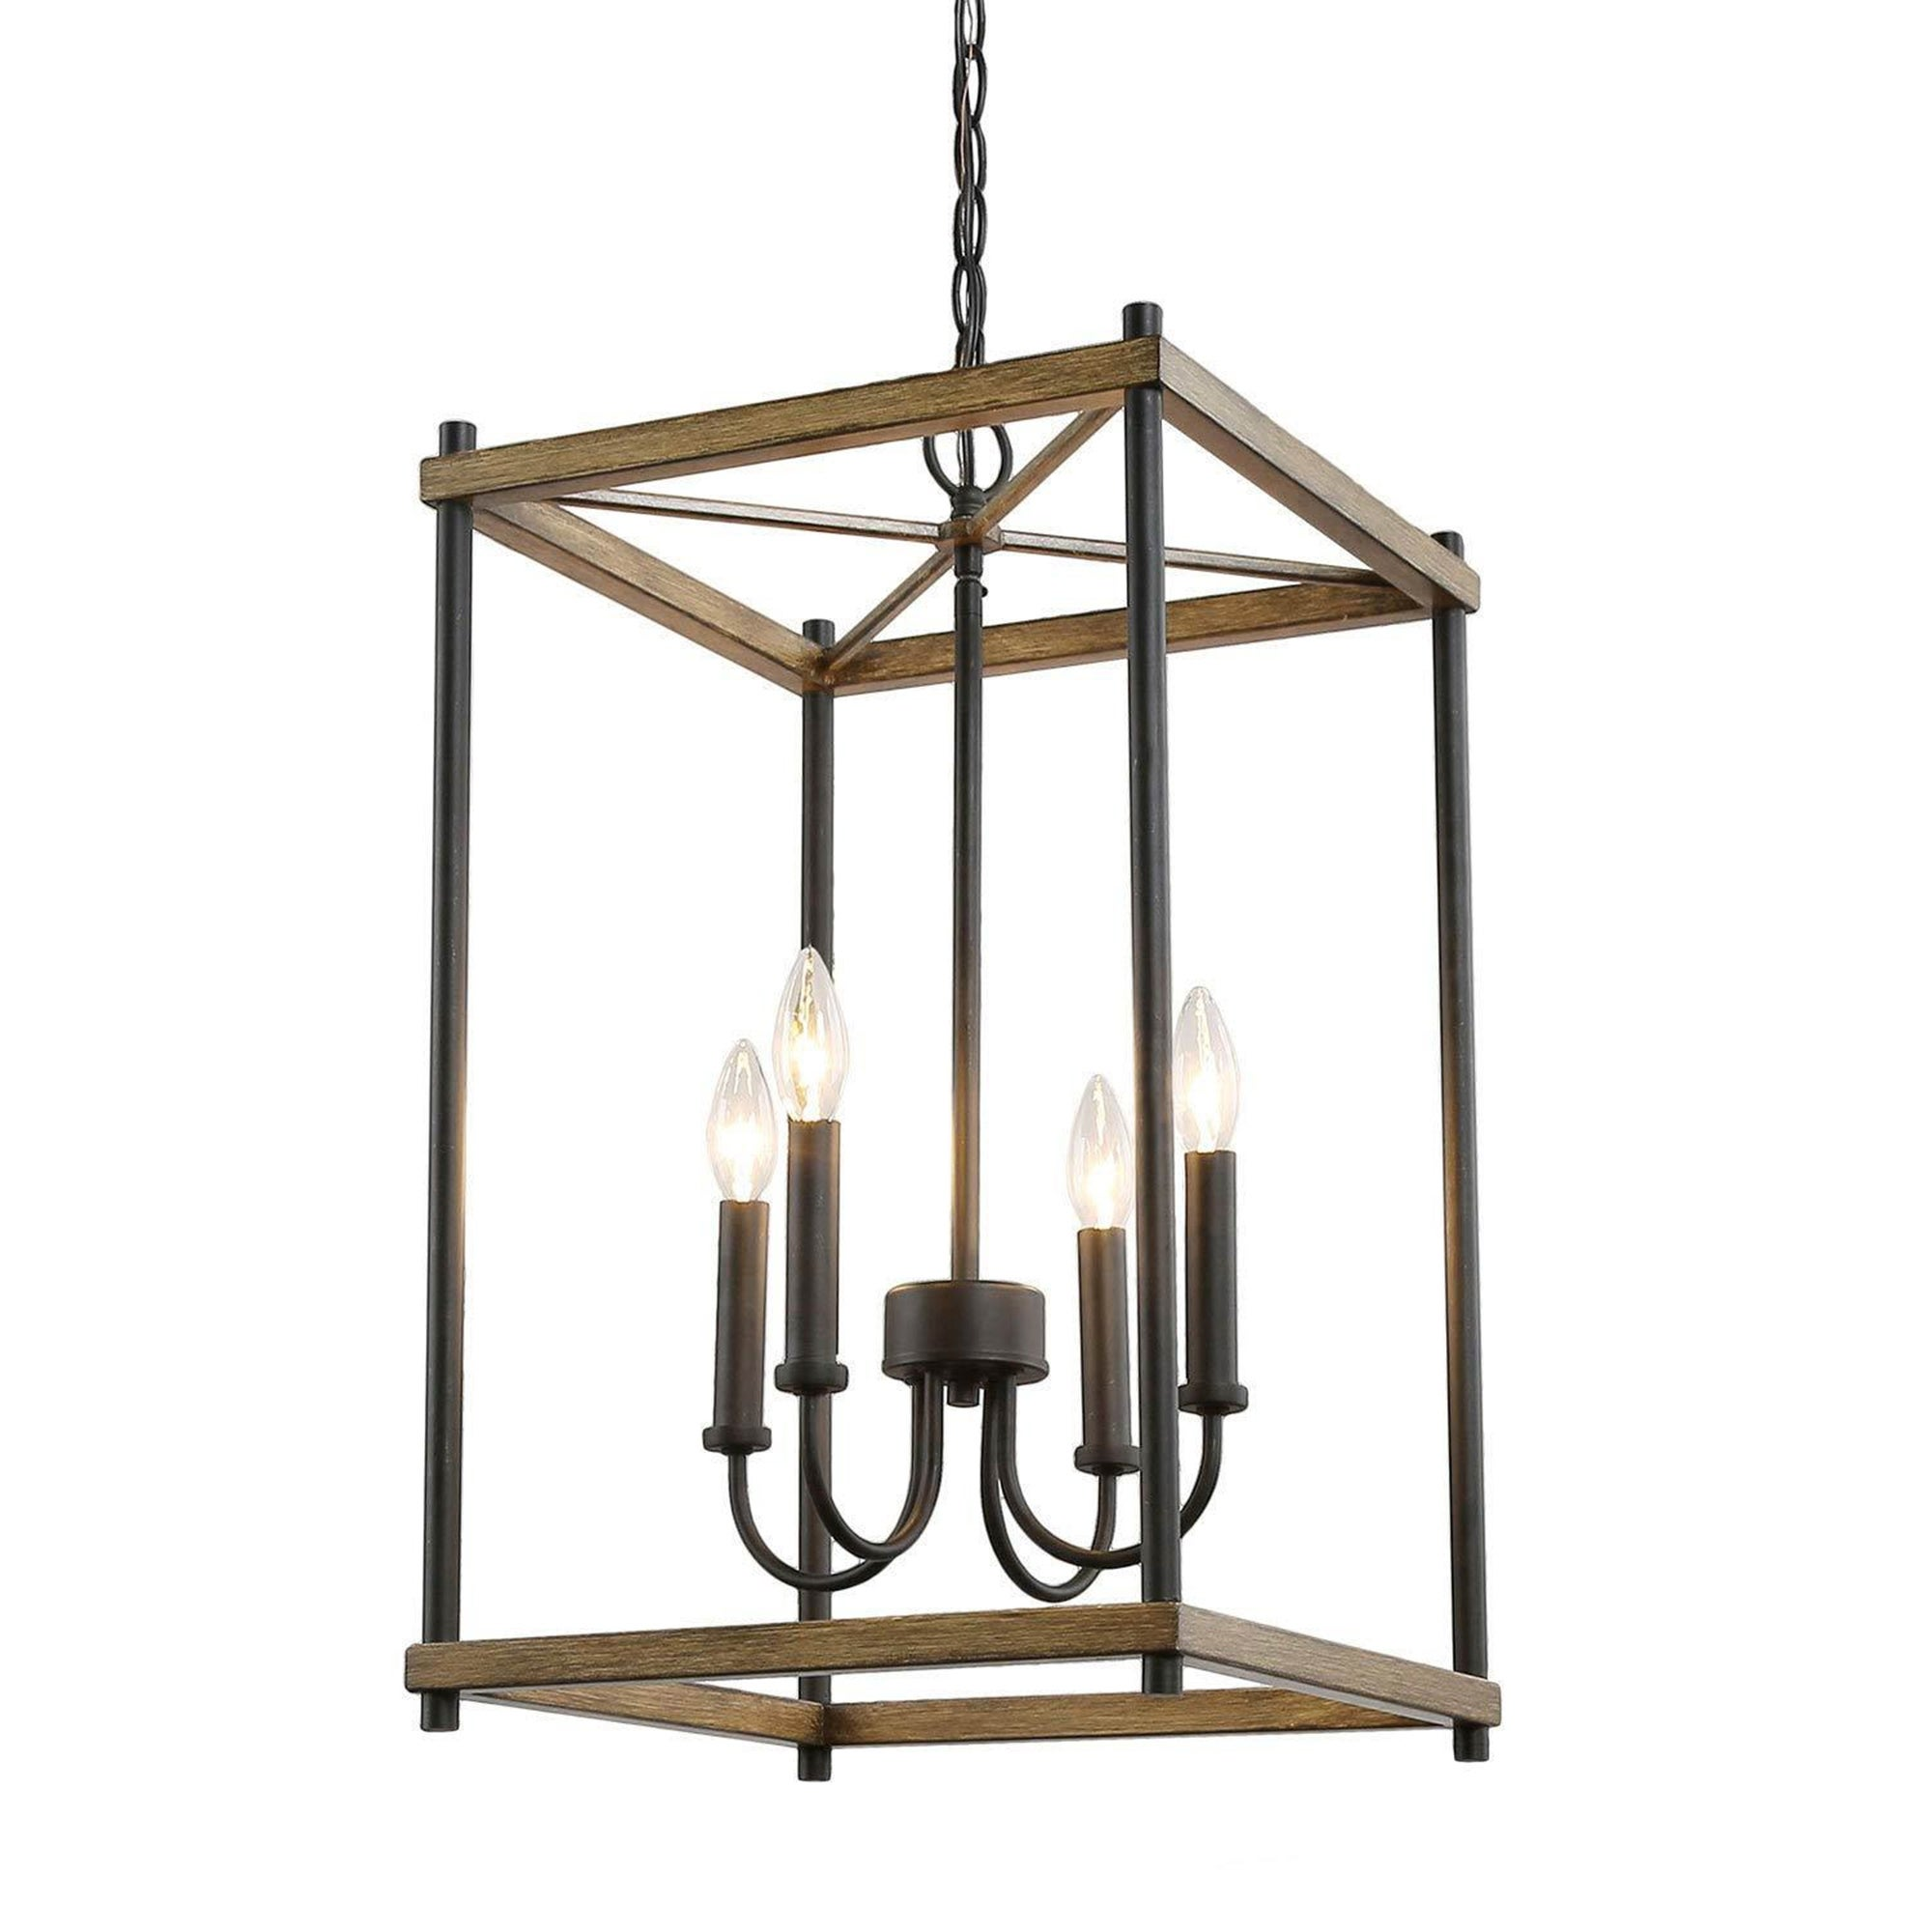 Picture of: Modern Farmhouse 4 Lights Lantern Candle Chandelier Faux Wood Pendant Kitchen Island Lighting For Dining Room Overstock 30722022